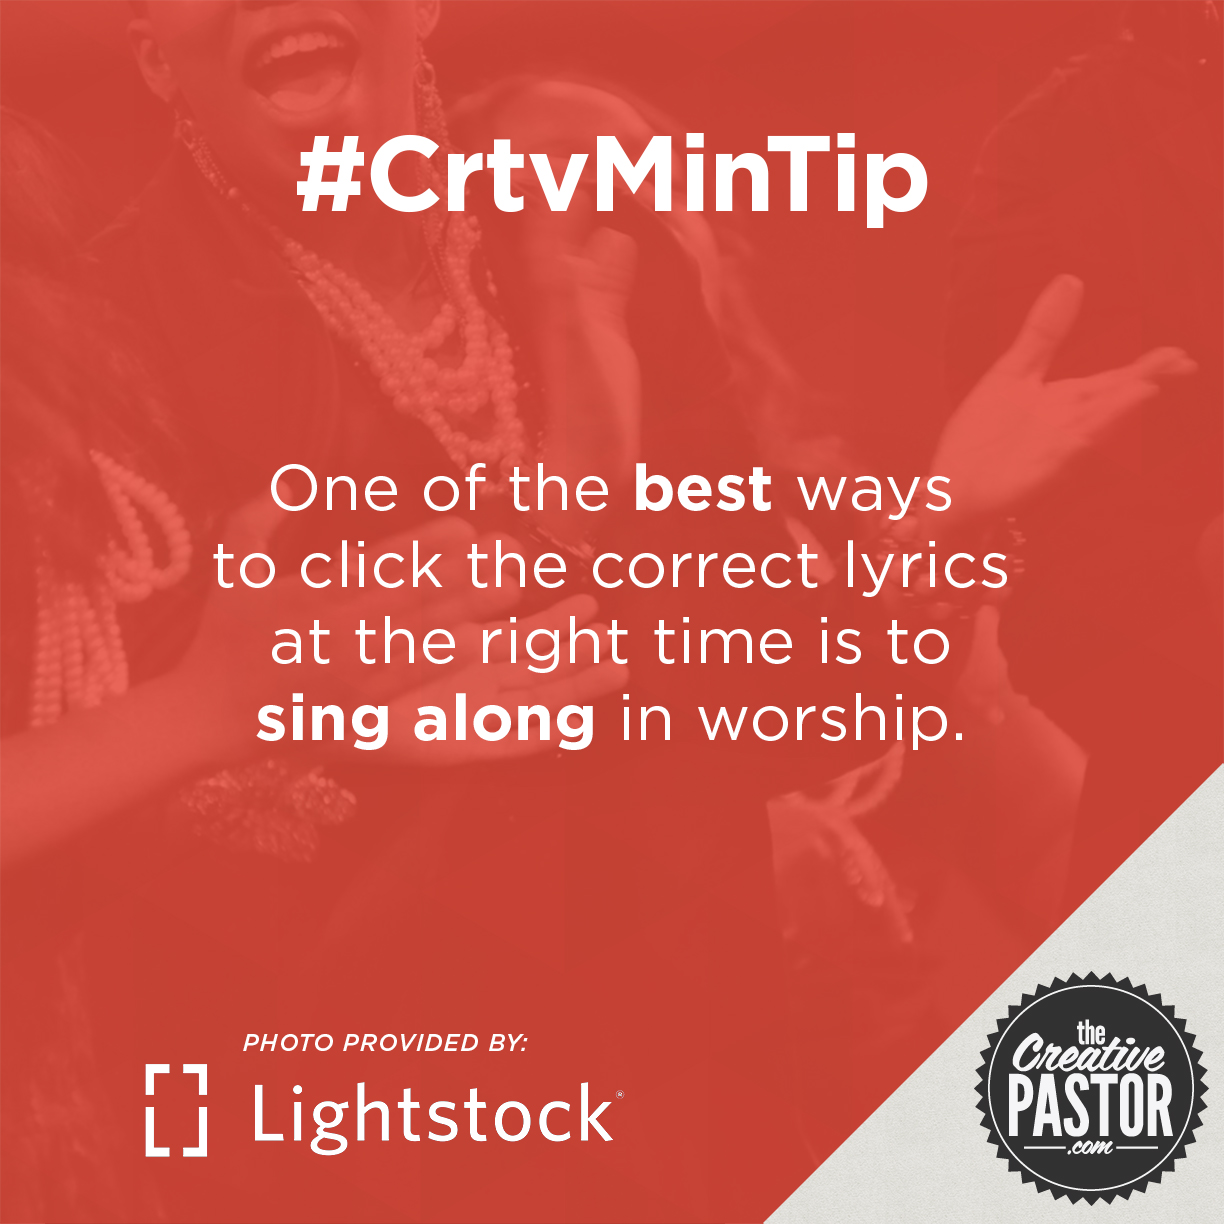 One of the best ways to click the correct lyrics at the right time is to sing along in worship.